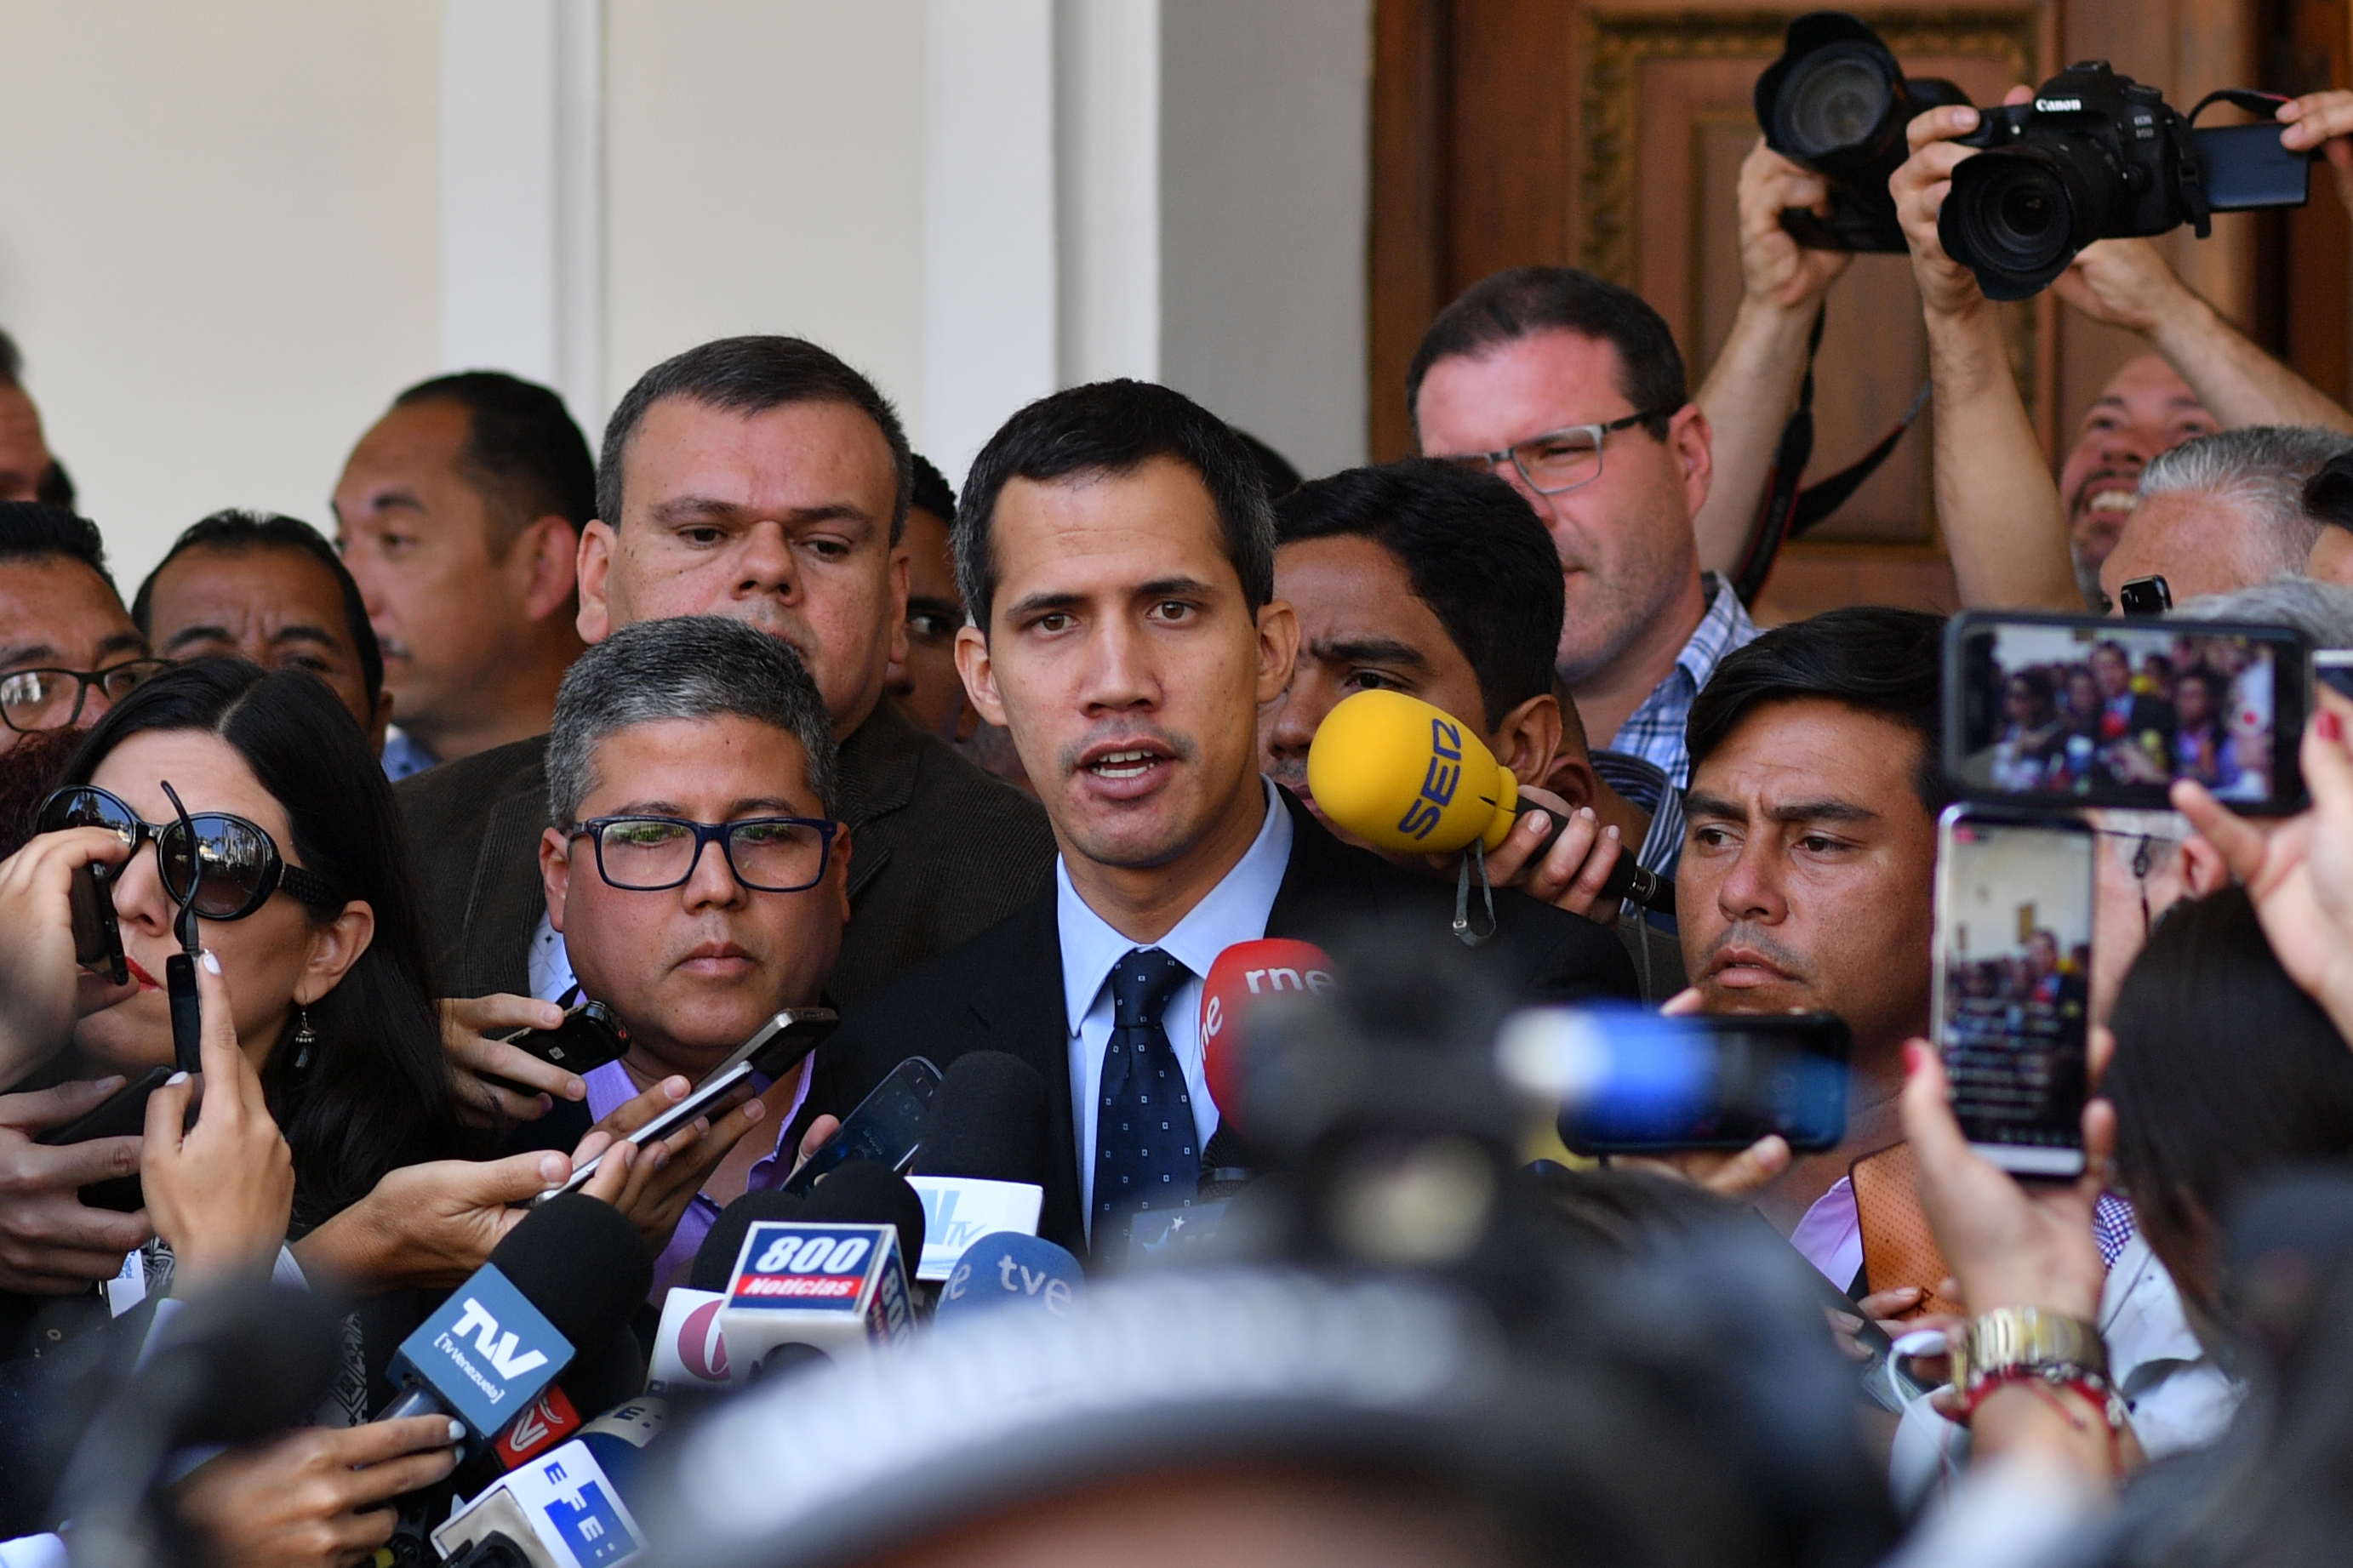 """Venezuela's National Assembly head and self-proclaimed """"acting president"""" Juan Guaido, talks to journalists upon arrival at the National Assembly in Caracas on January 29, 2019. - Venezuela's Attorney General Tarek William Saab asked the Supreme Court on Tuesday to bar self-proclaimed acting president and opposition leader Juan Guaido from leaving the country and to freeze his assets. (Photo by Yuri CORTEZ / AFP) (Photo credit should read YURI CORTEZ/AFP/Getty Images)"""